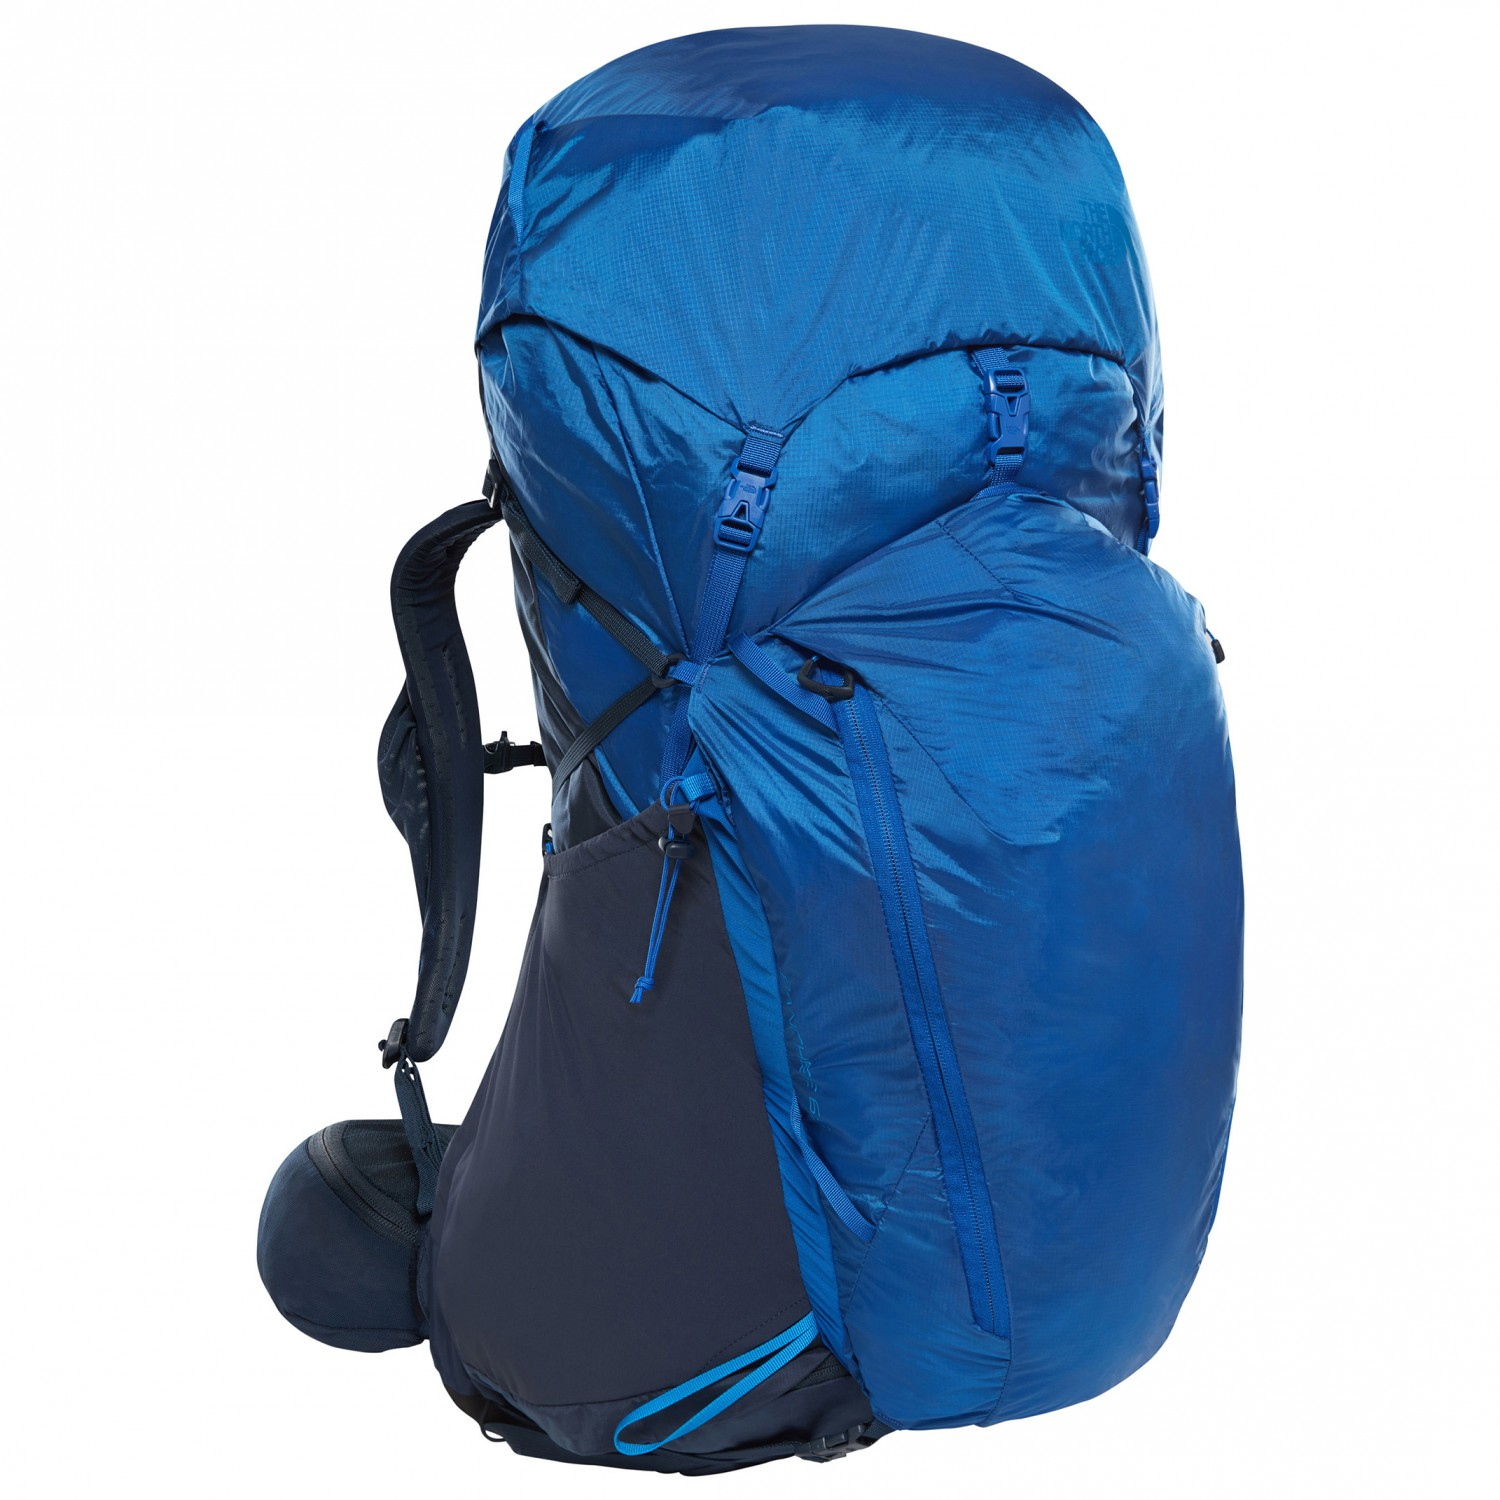 The North Face - Banchee 65 - Walking backpack c33cd2c84